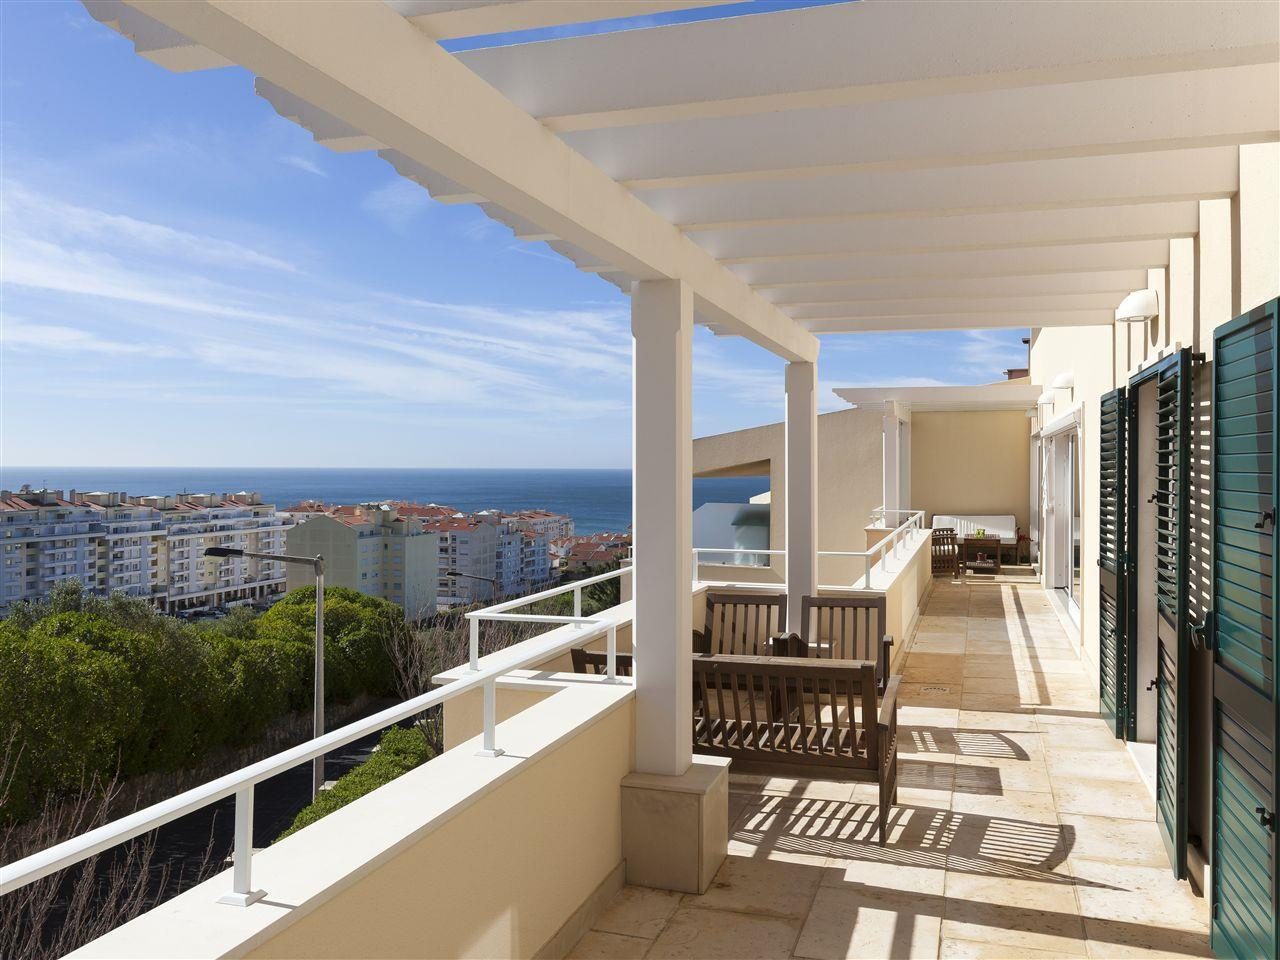 Apartamento para Venda às Flat, 4 bedrooms, for Sale Cascais, Lisboa Portugal